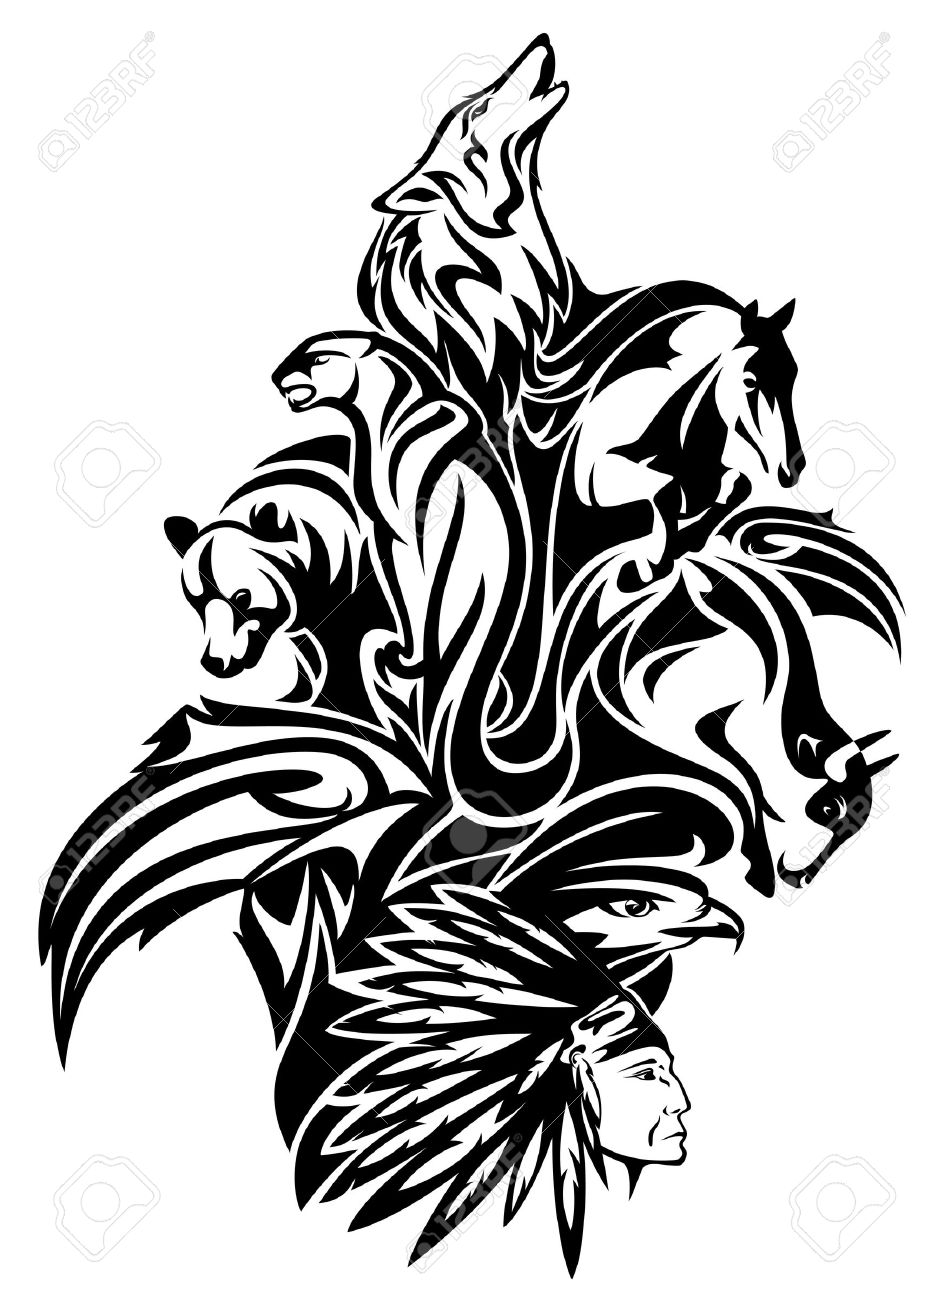 25b1f040f Native American chief with animal spirits design - black and white tribal  composition Stock Vector -